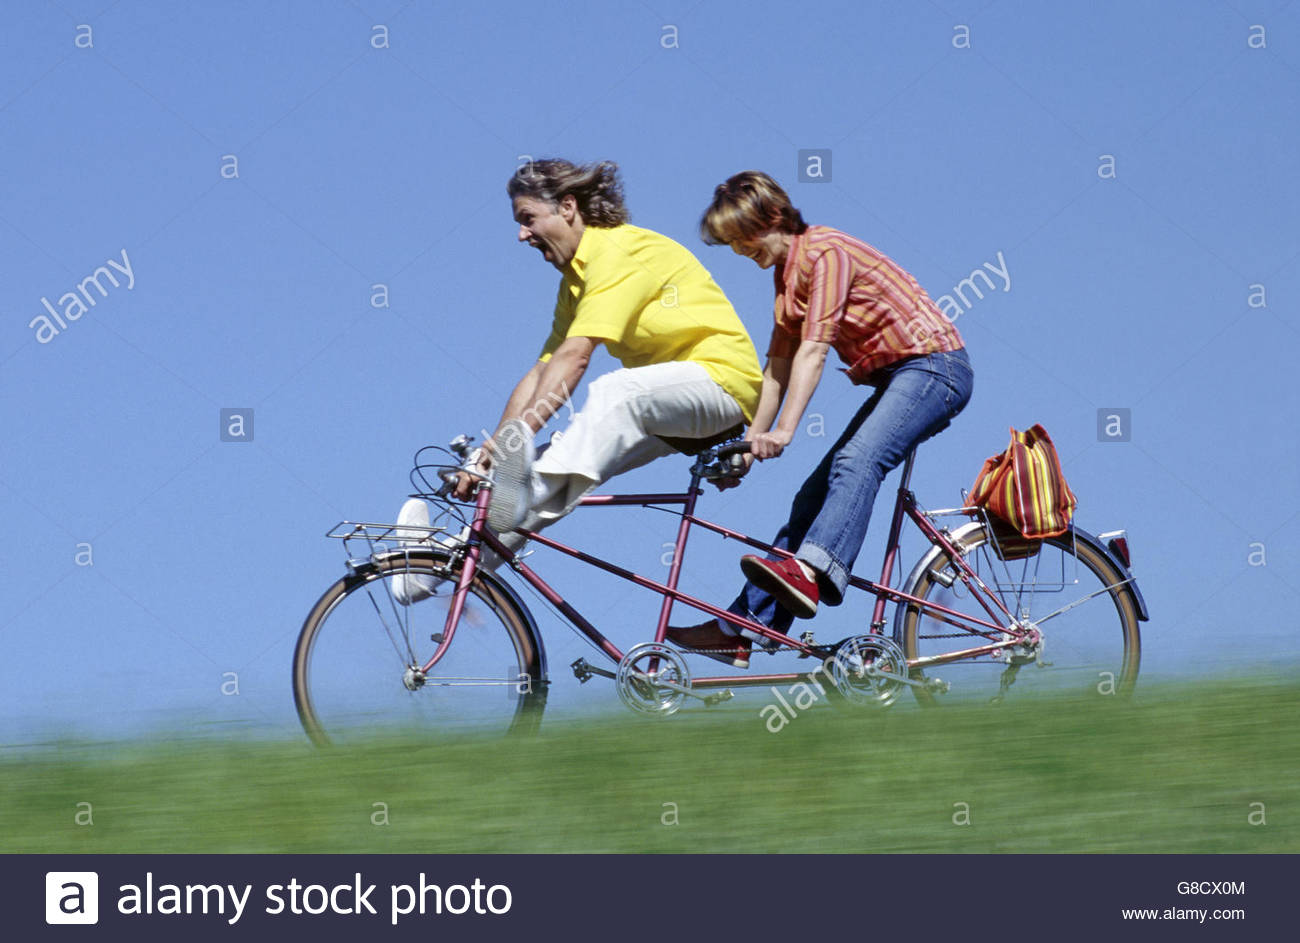 Couple riding a tandem bike - Stock Image